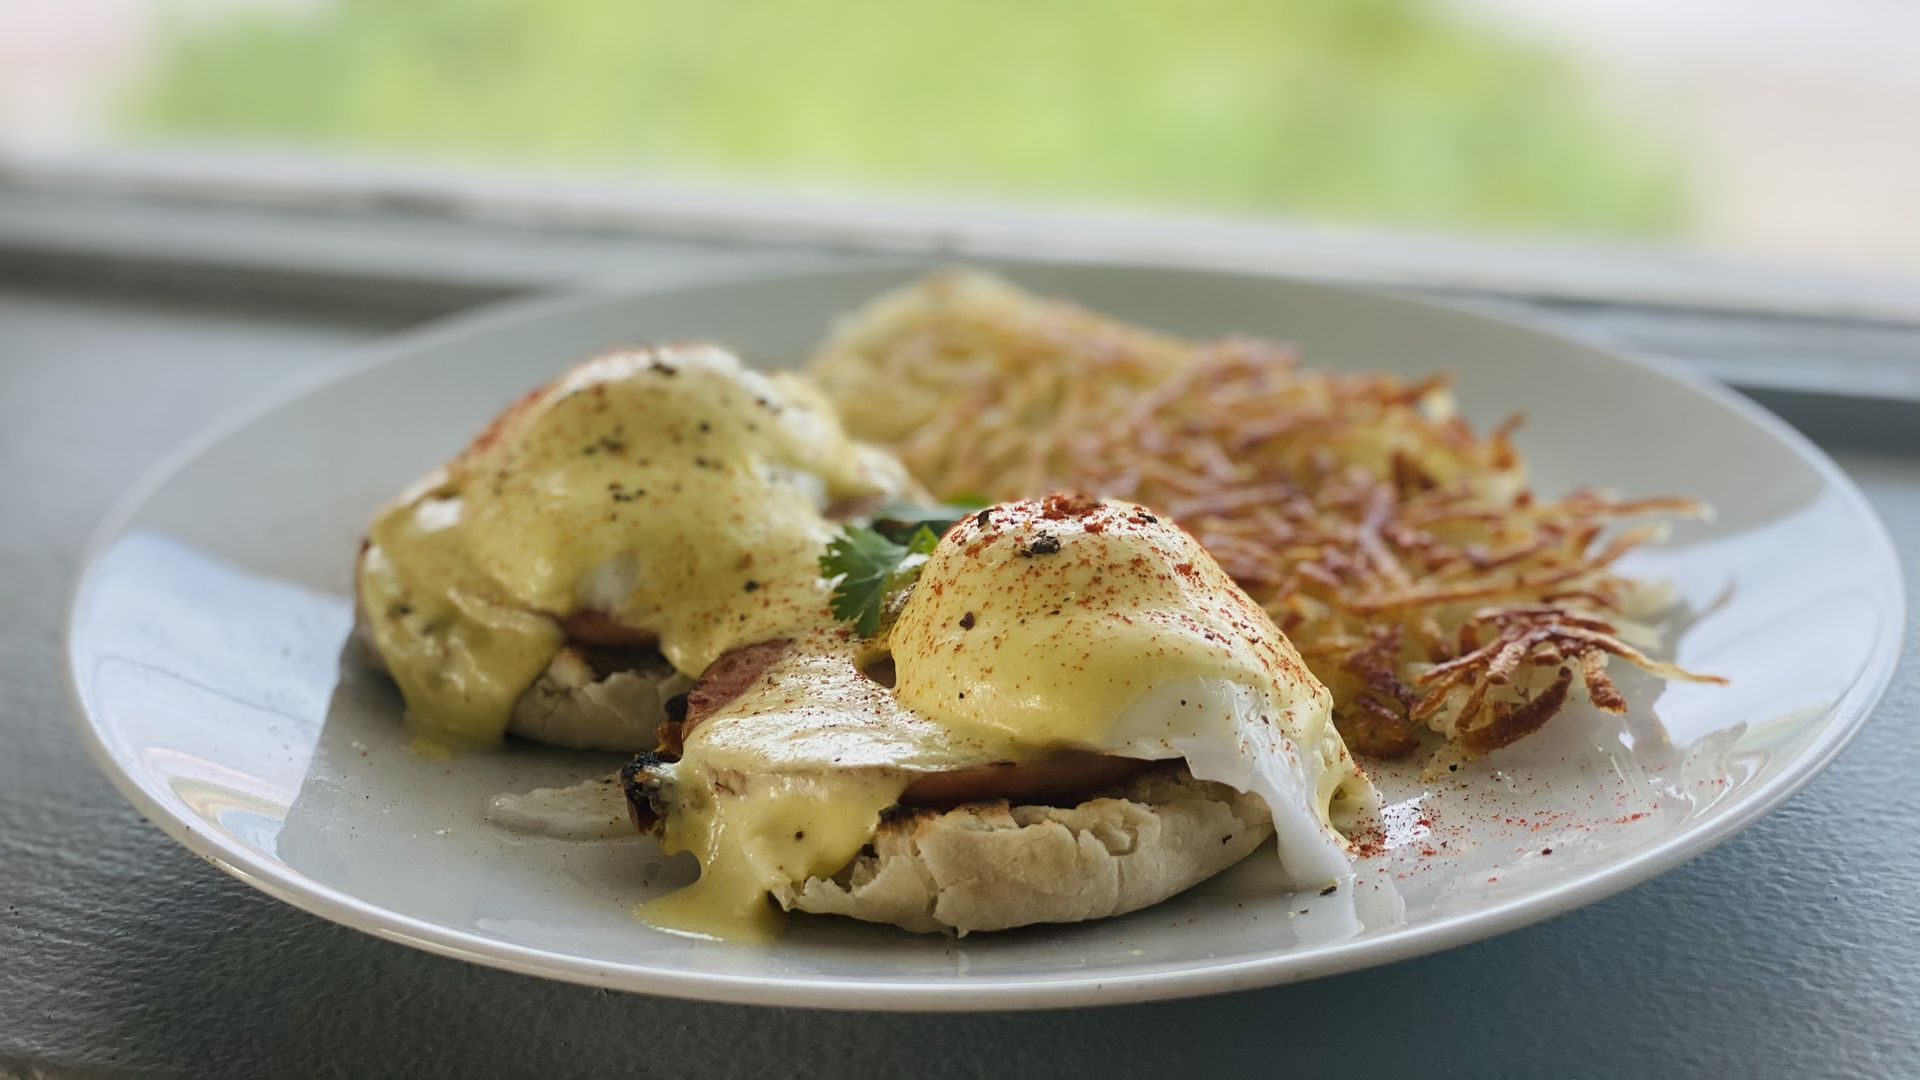 A photo of eggs Benedict with latkes.